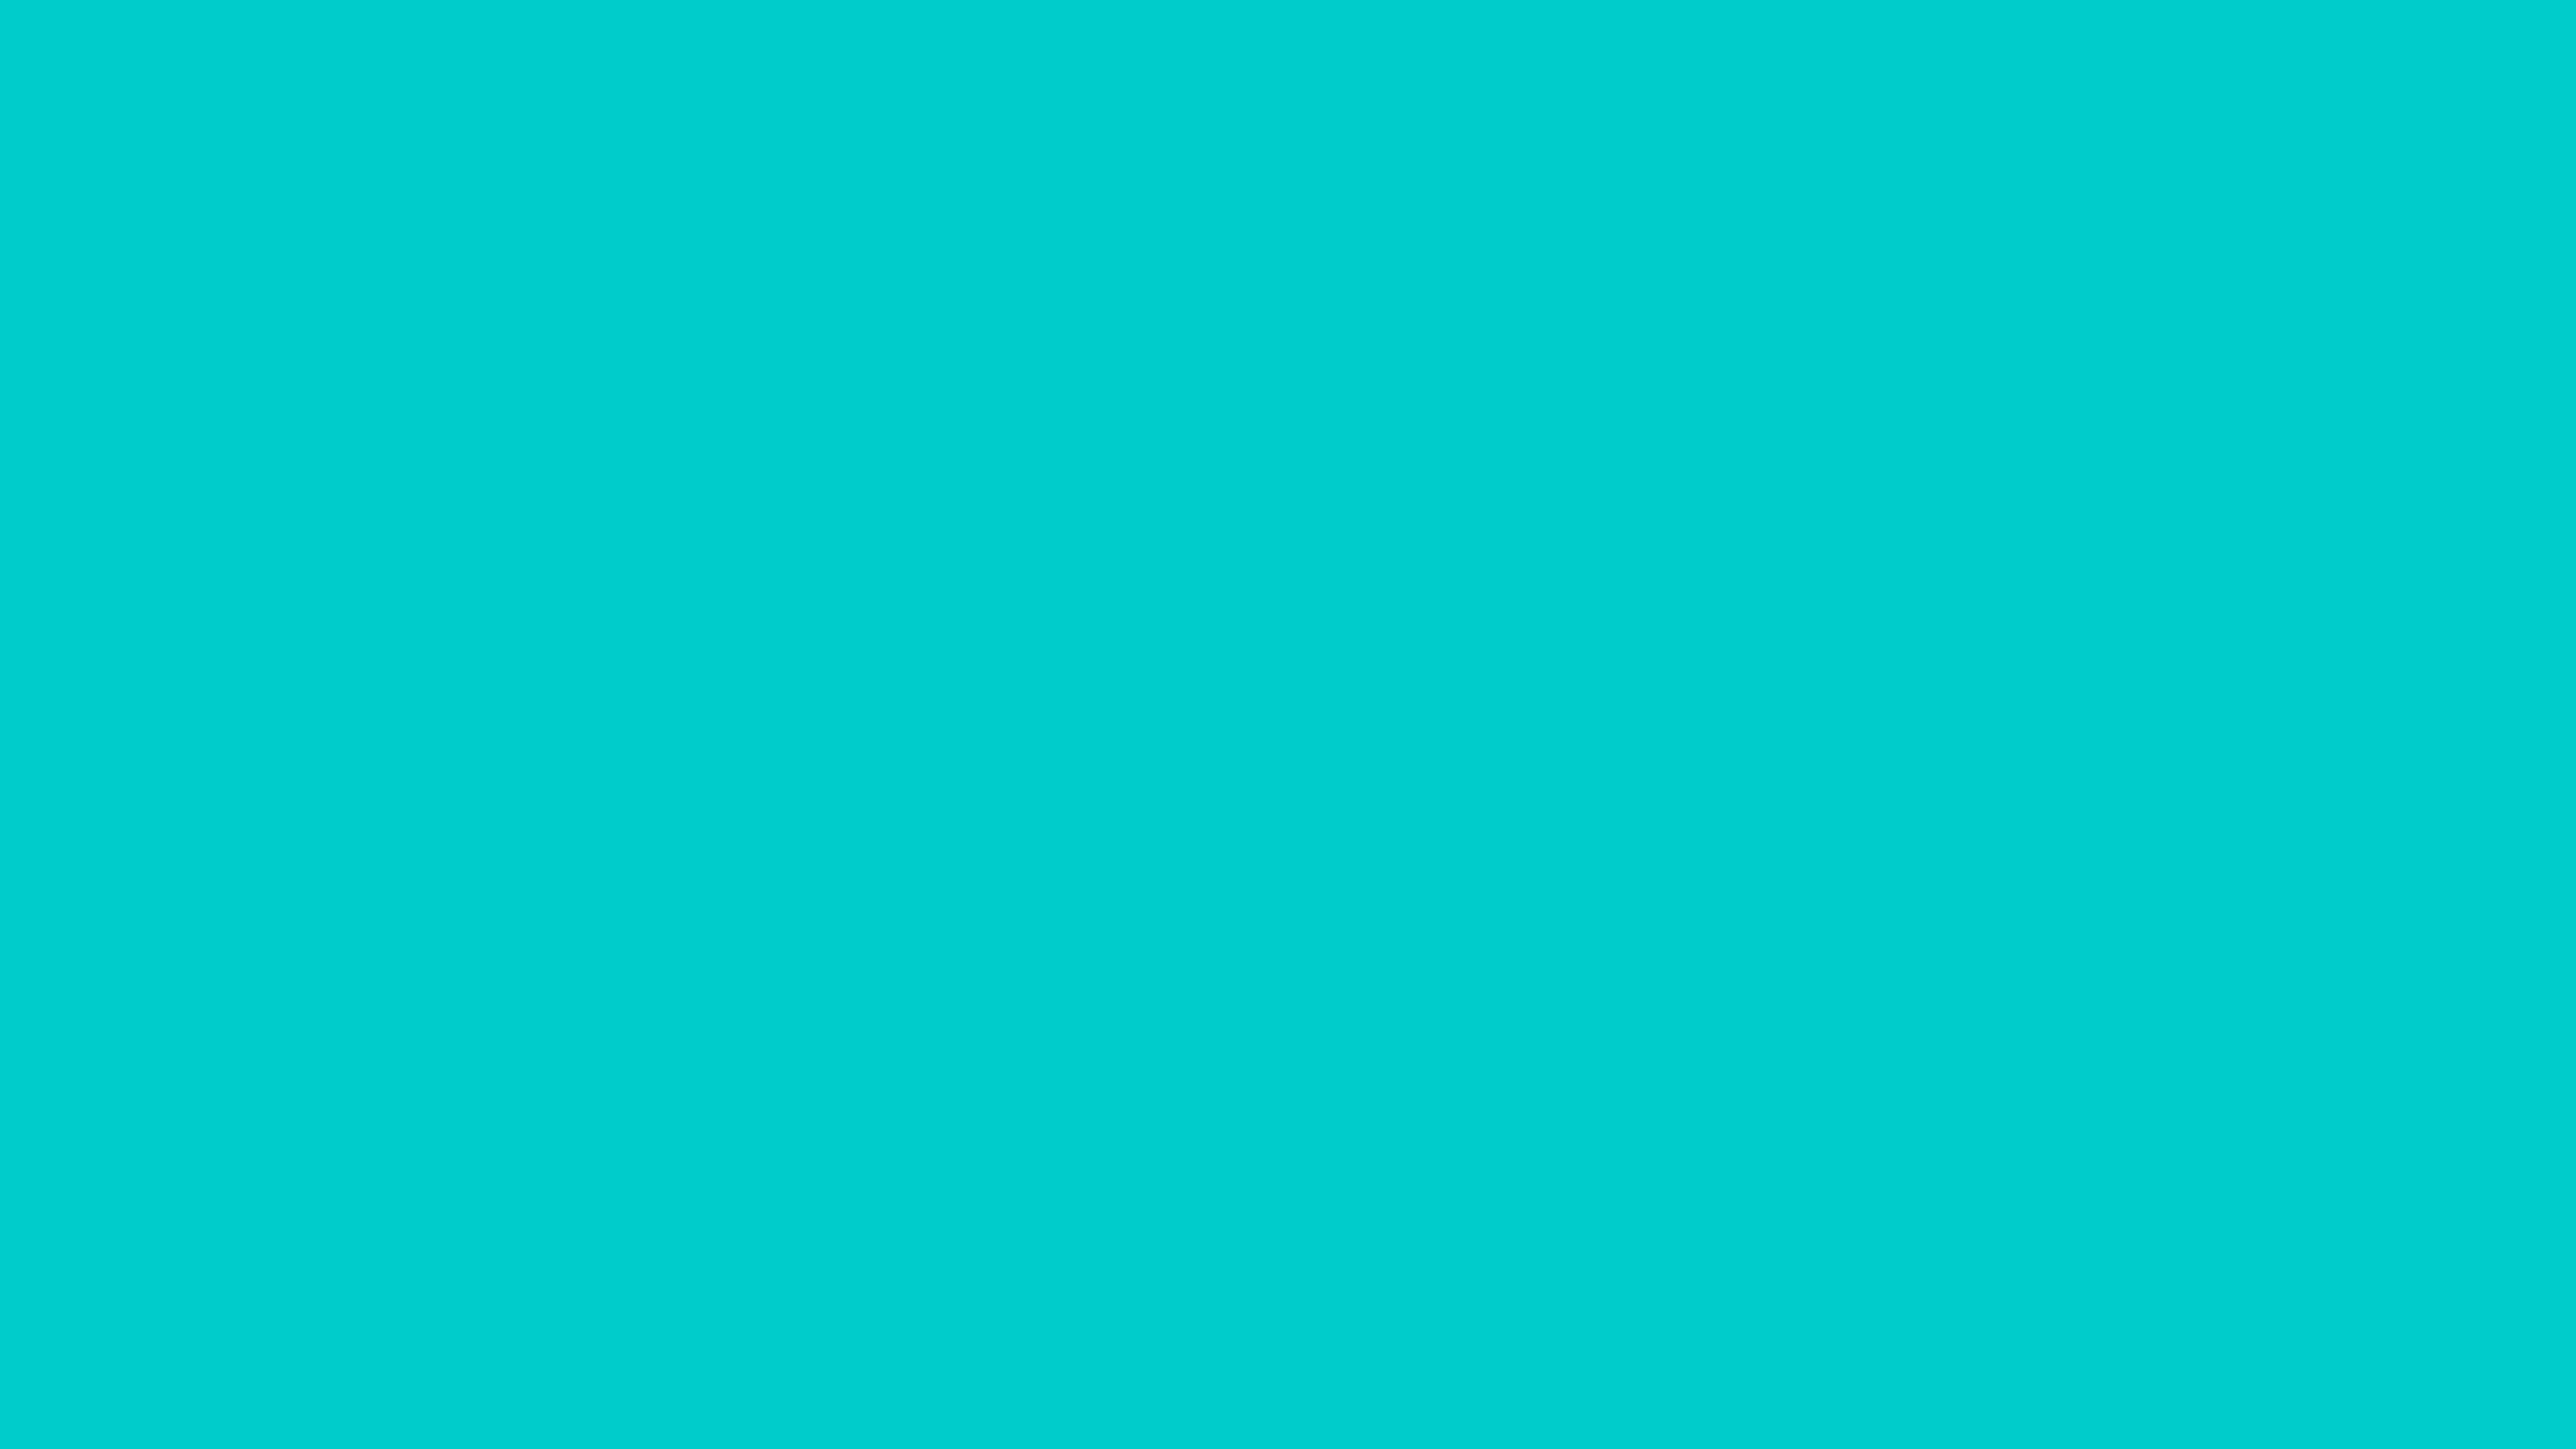 5120x2880 Robin Egg Blue Solid Color Background